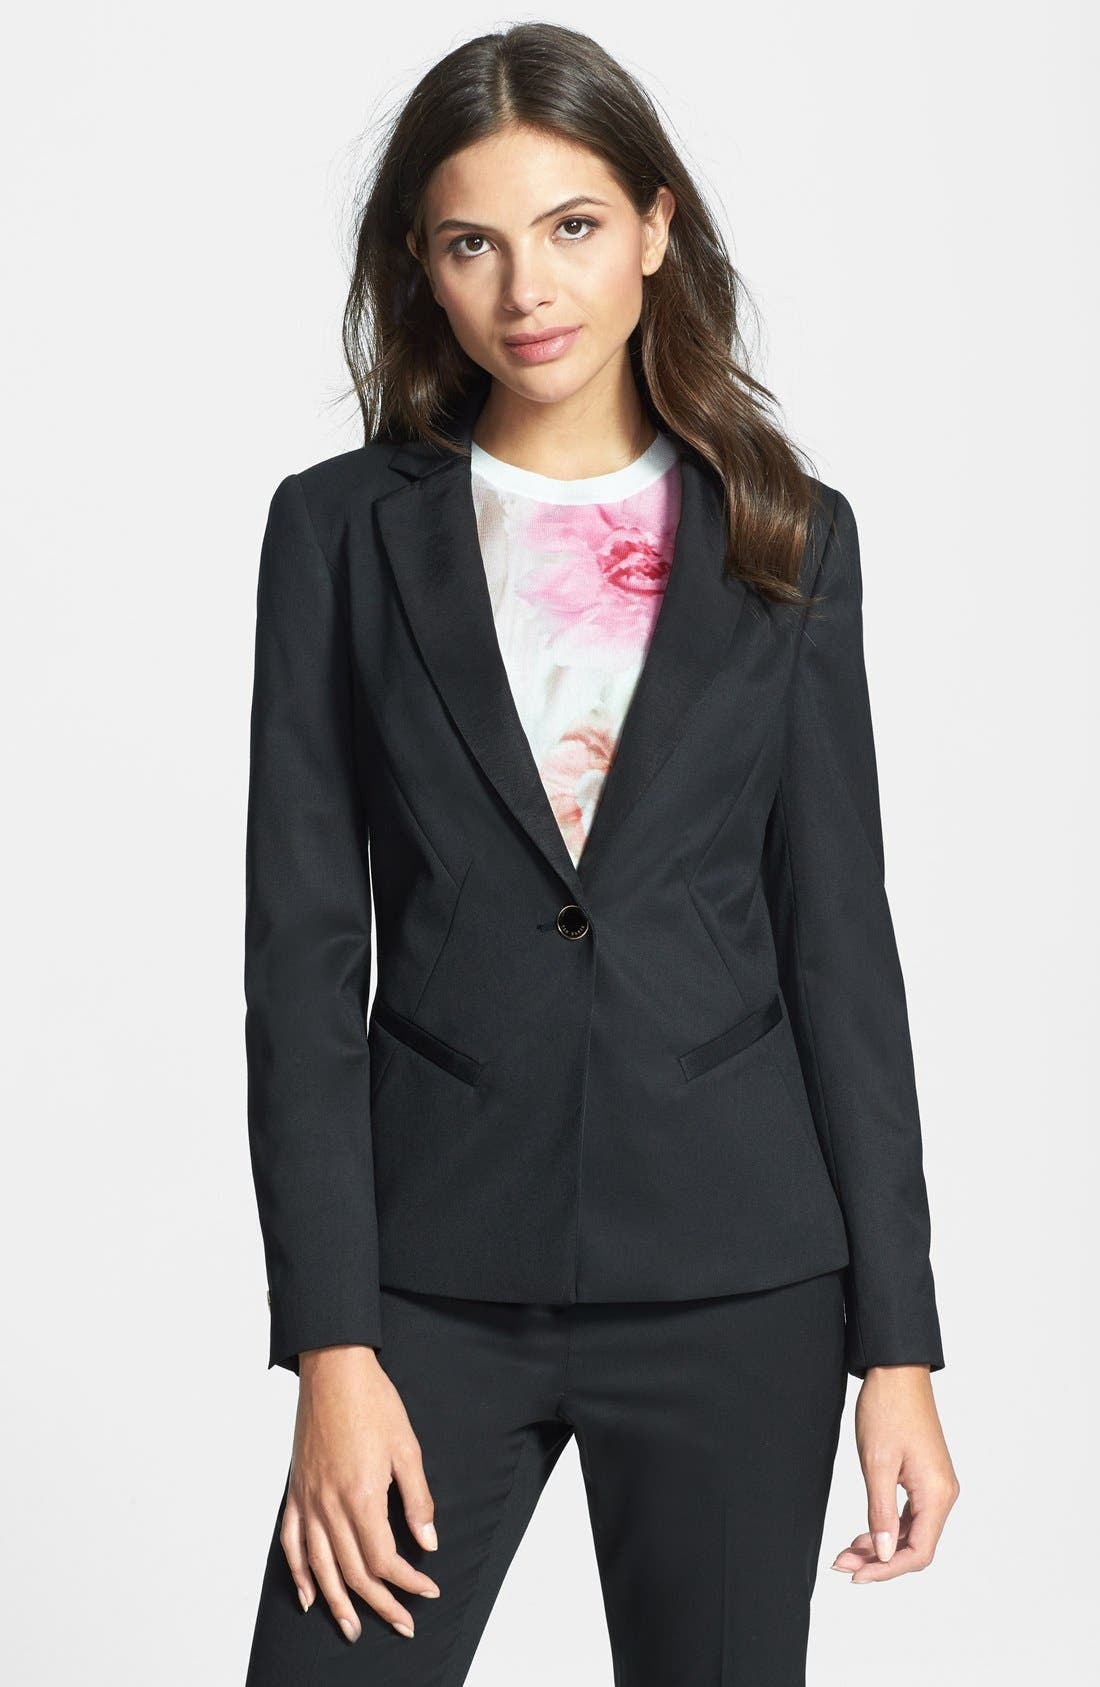 Alternate Image 1 Selected - Ted Baker London Stretch Woven Suit Jacket